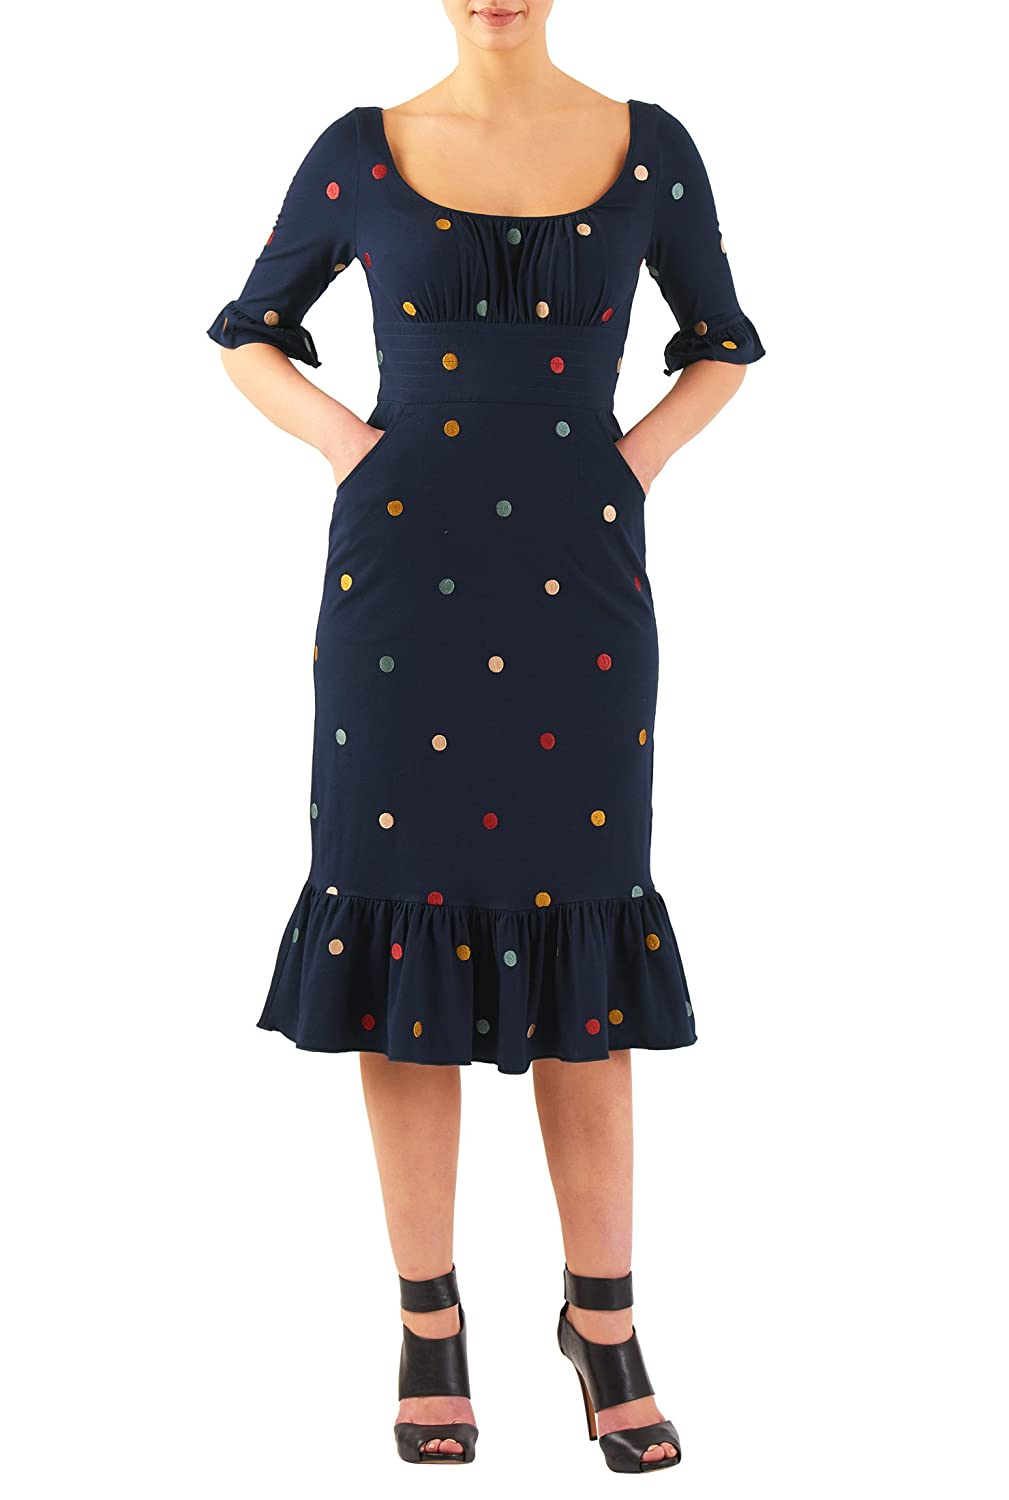 1950s Polka Dot Dresses Flounce hem embellished dot cotton knit sheath dress $57.95 AT vintagedancer.com